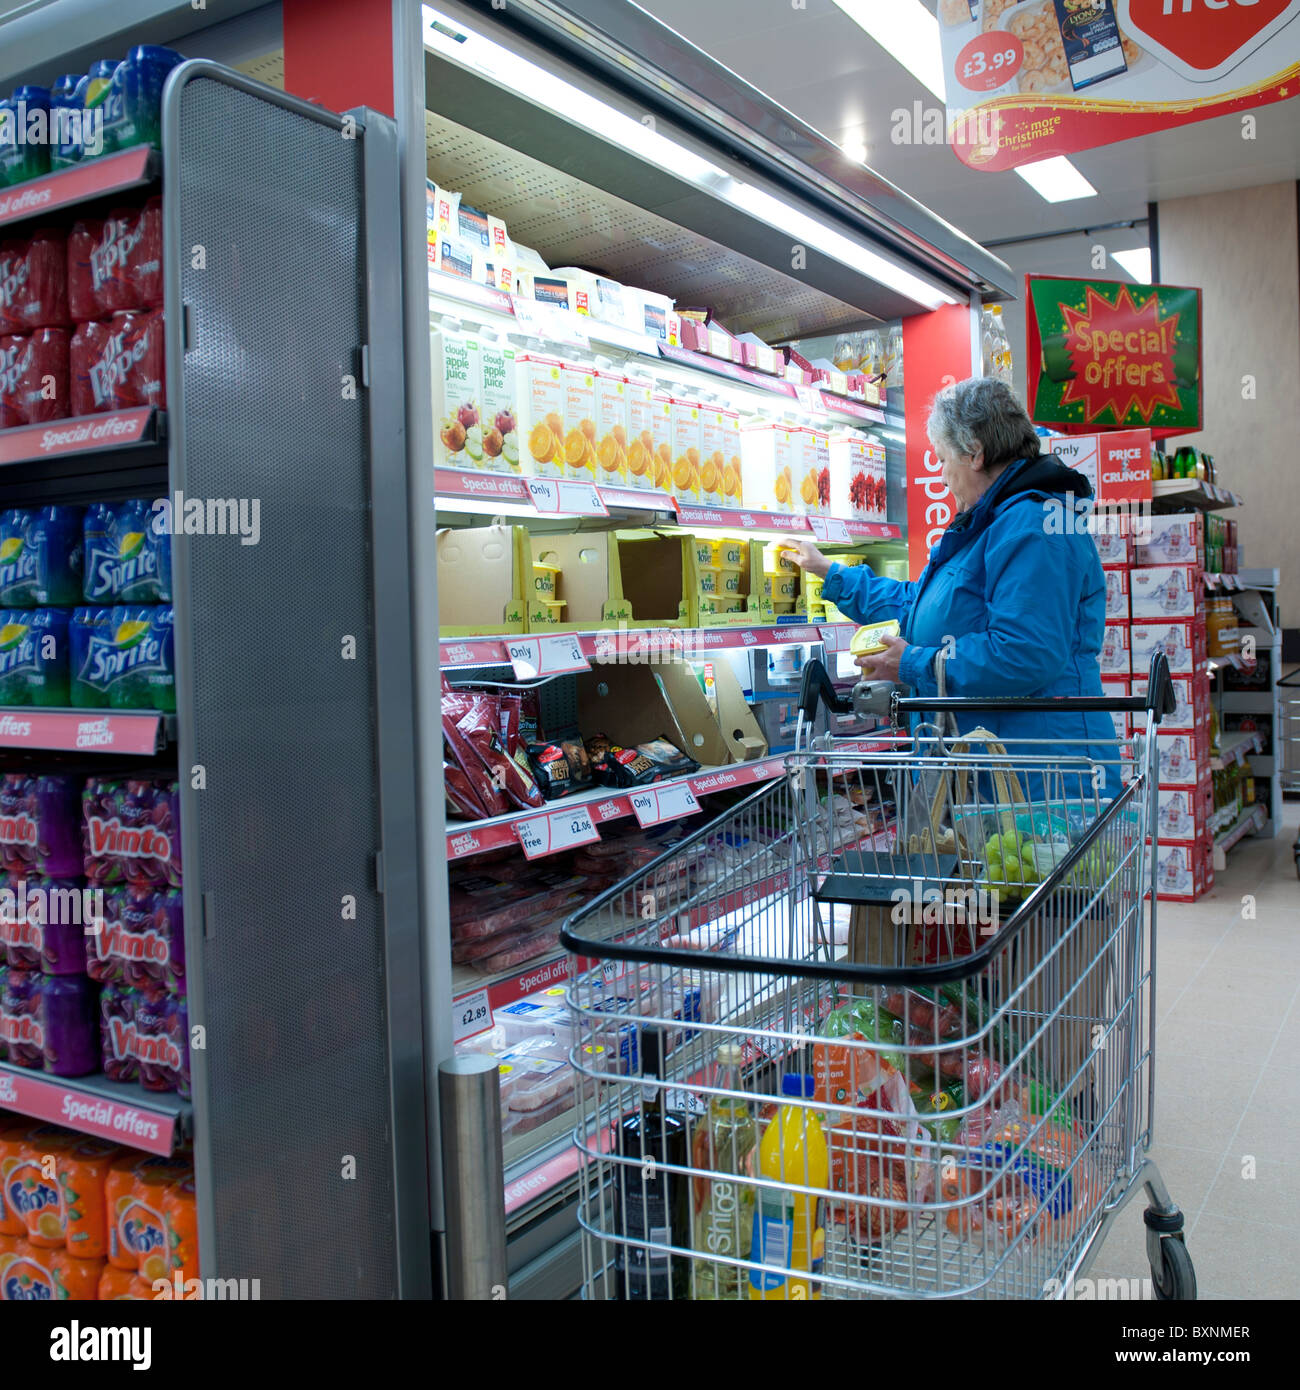 A woman with a trolley shopping for food in a branch of the Morrissons supermarket, UK - Stock Image